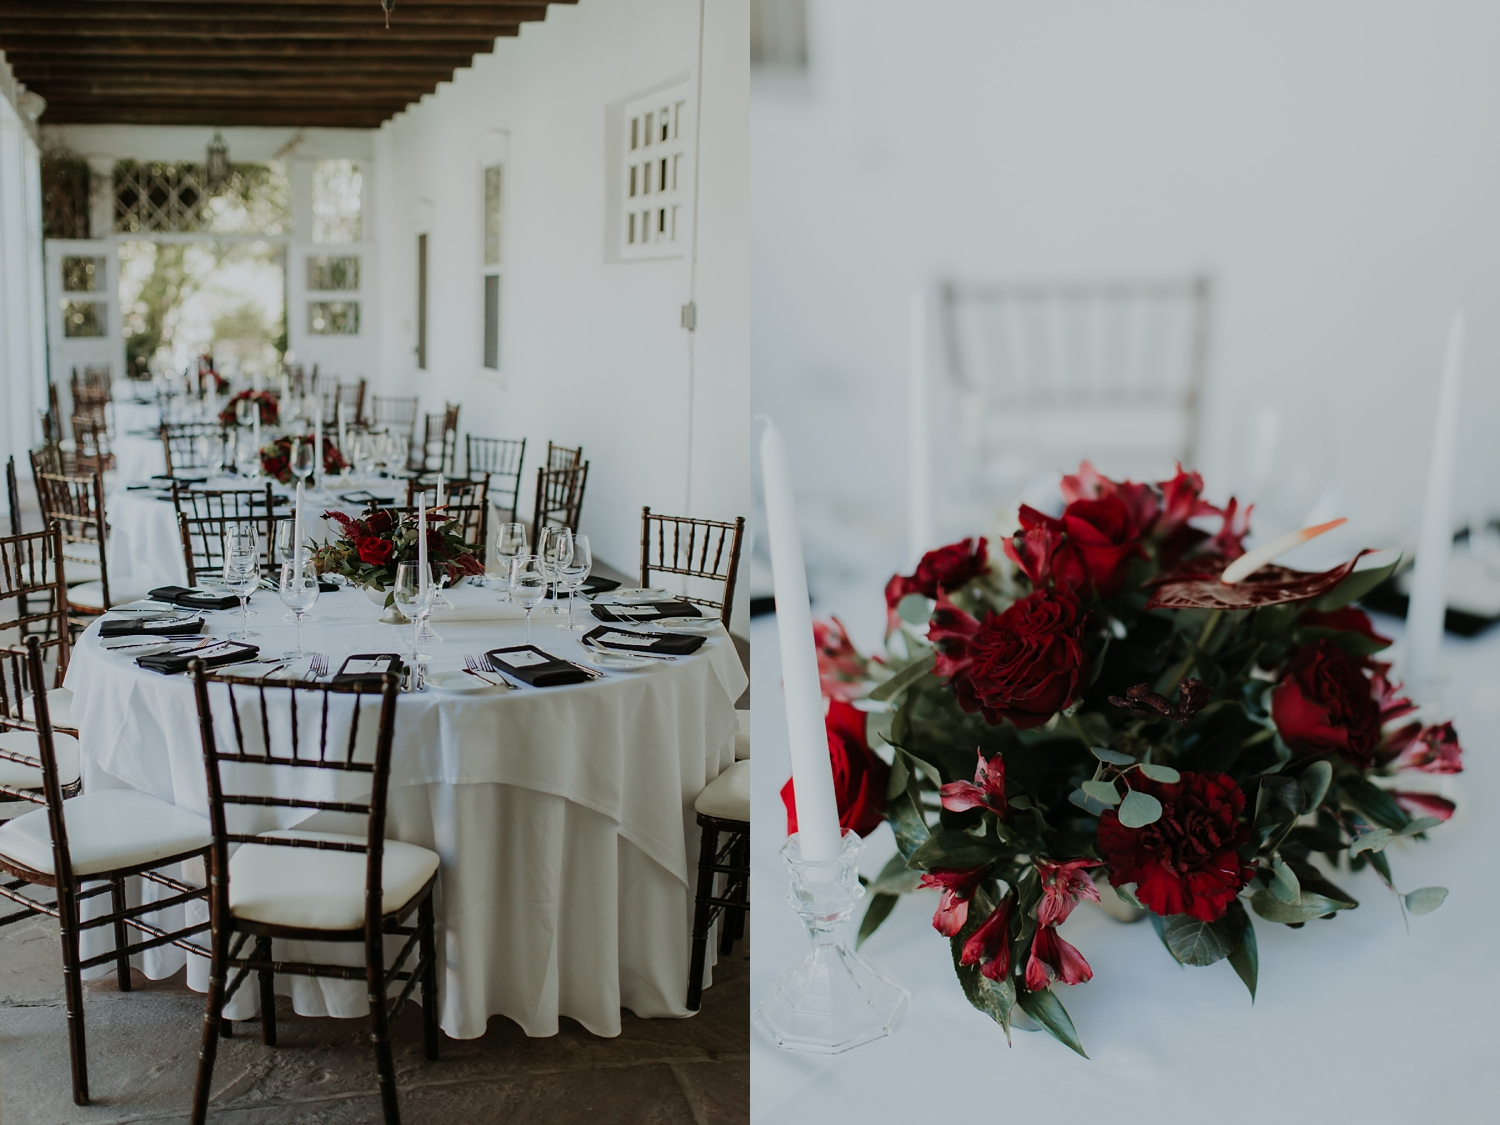 Alicia+lucia+photography+-+albuquerque+wedding+photographer+-+santa+fe+wedding+photography+-+new+mexico+wedding+photographer+-+los+poblanos+wedding+-+los+poblanos+fall+wedding+-+los+poblanos+october+wedding_0024.jpg